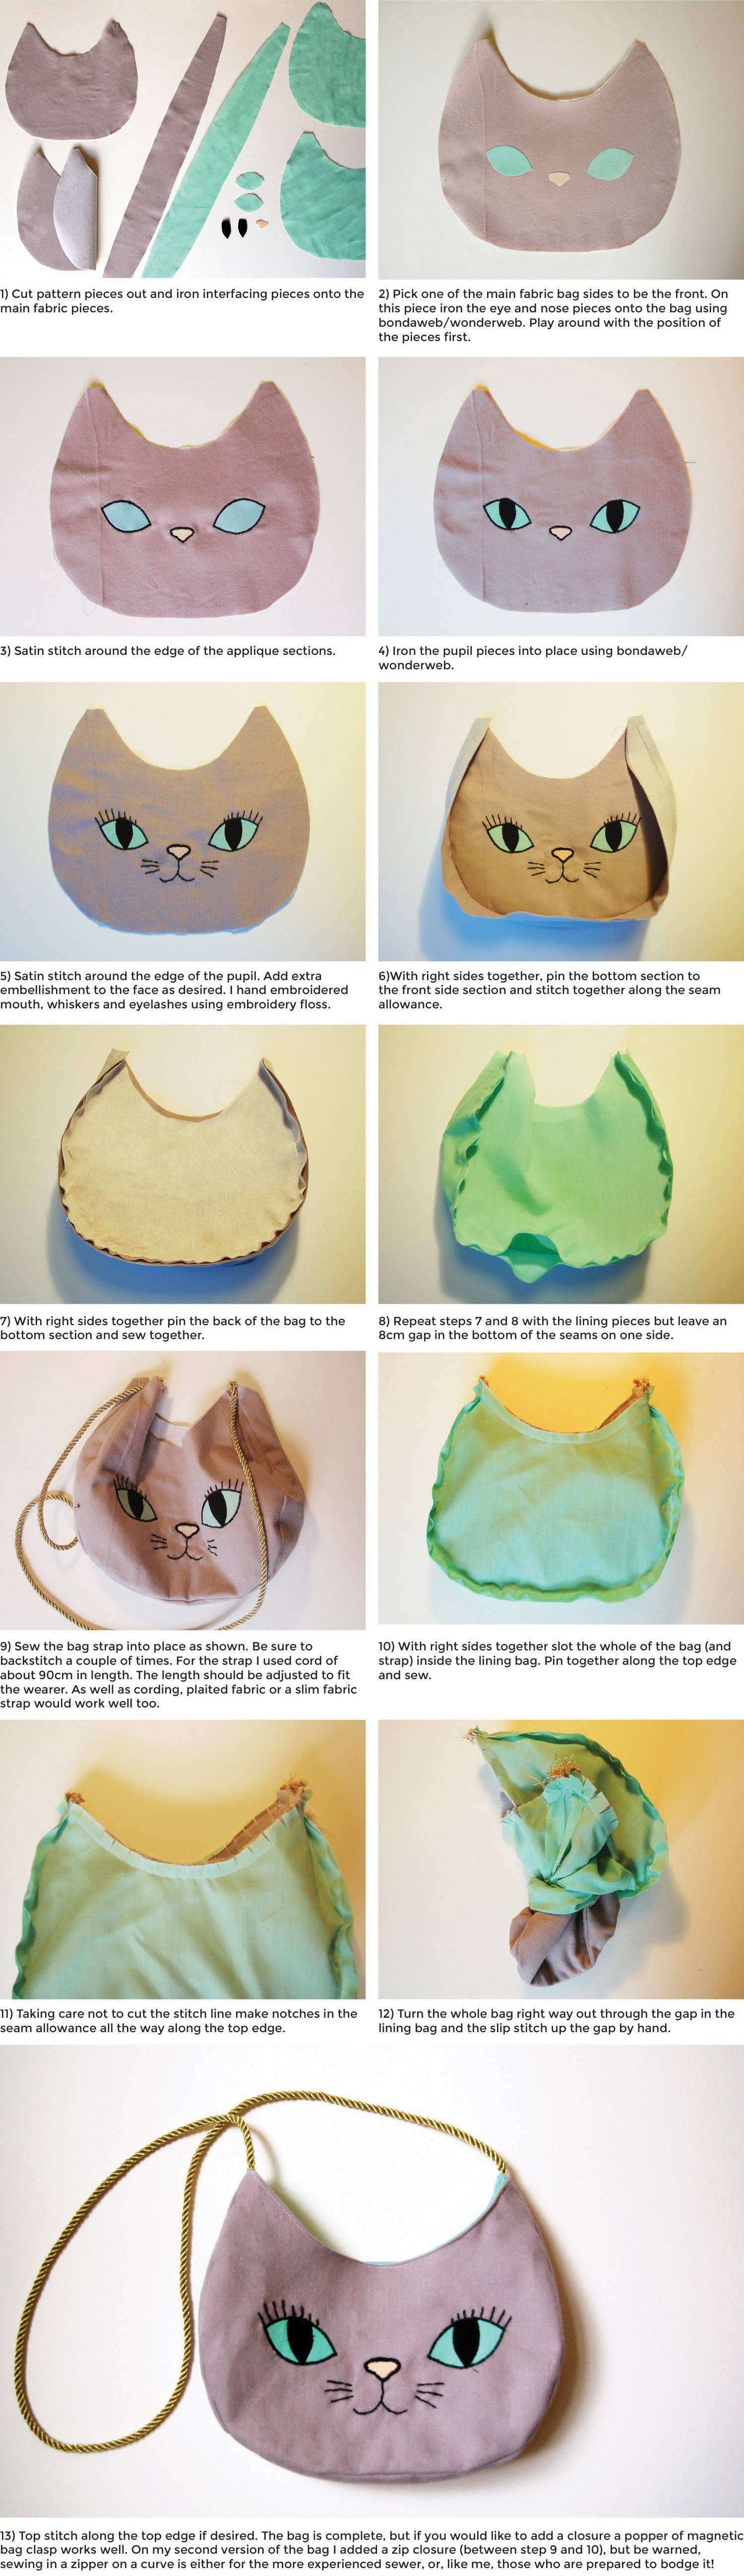 The purrfect bag tutorial